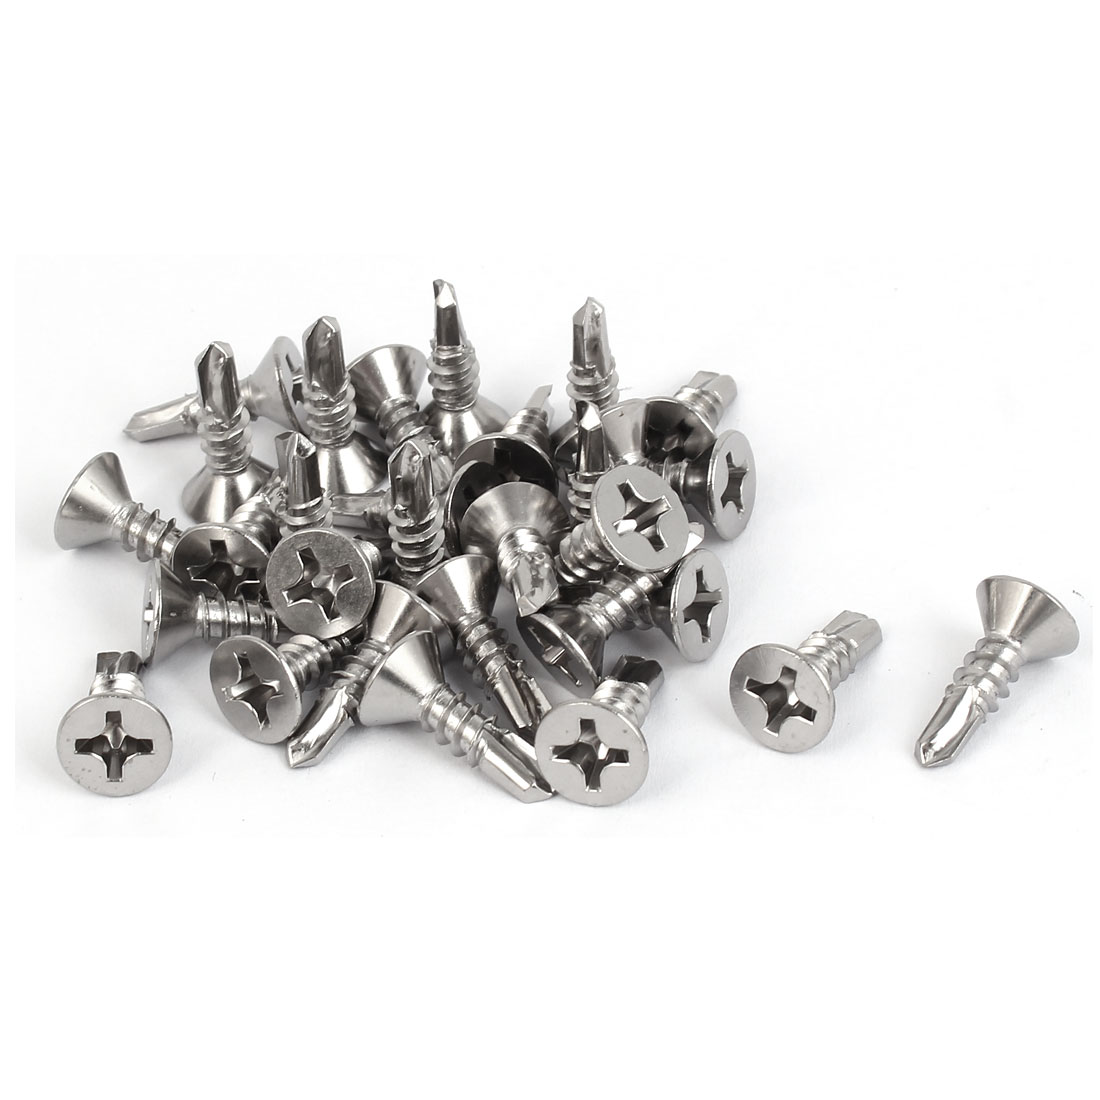 19mm Long M5.5 #12 Male Thread Self Drilling Countersunk Head Screws 30 Pcs